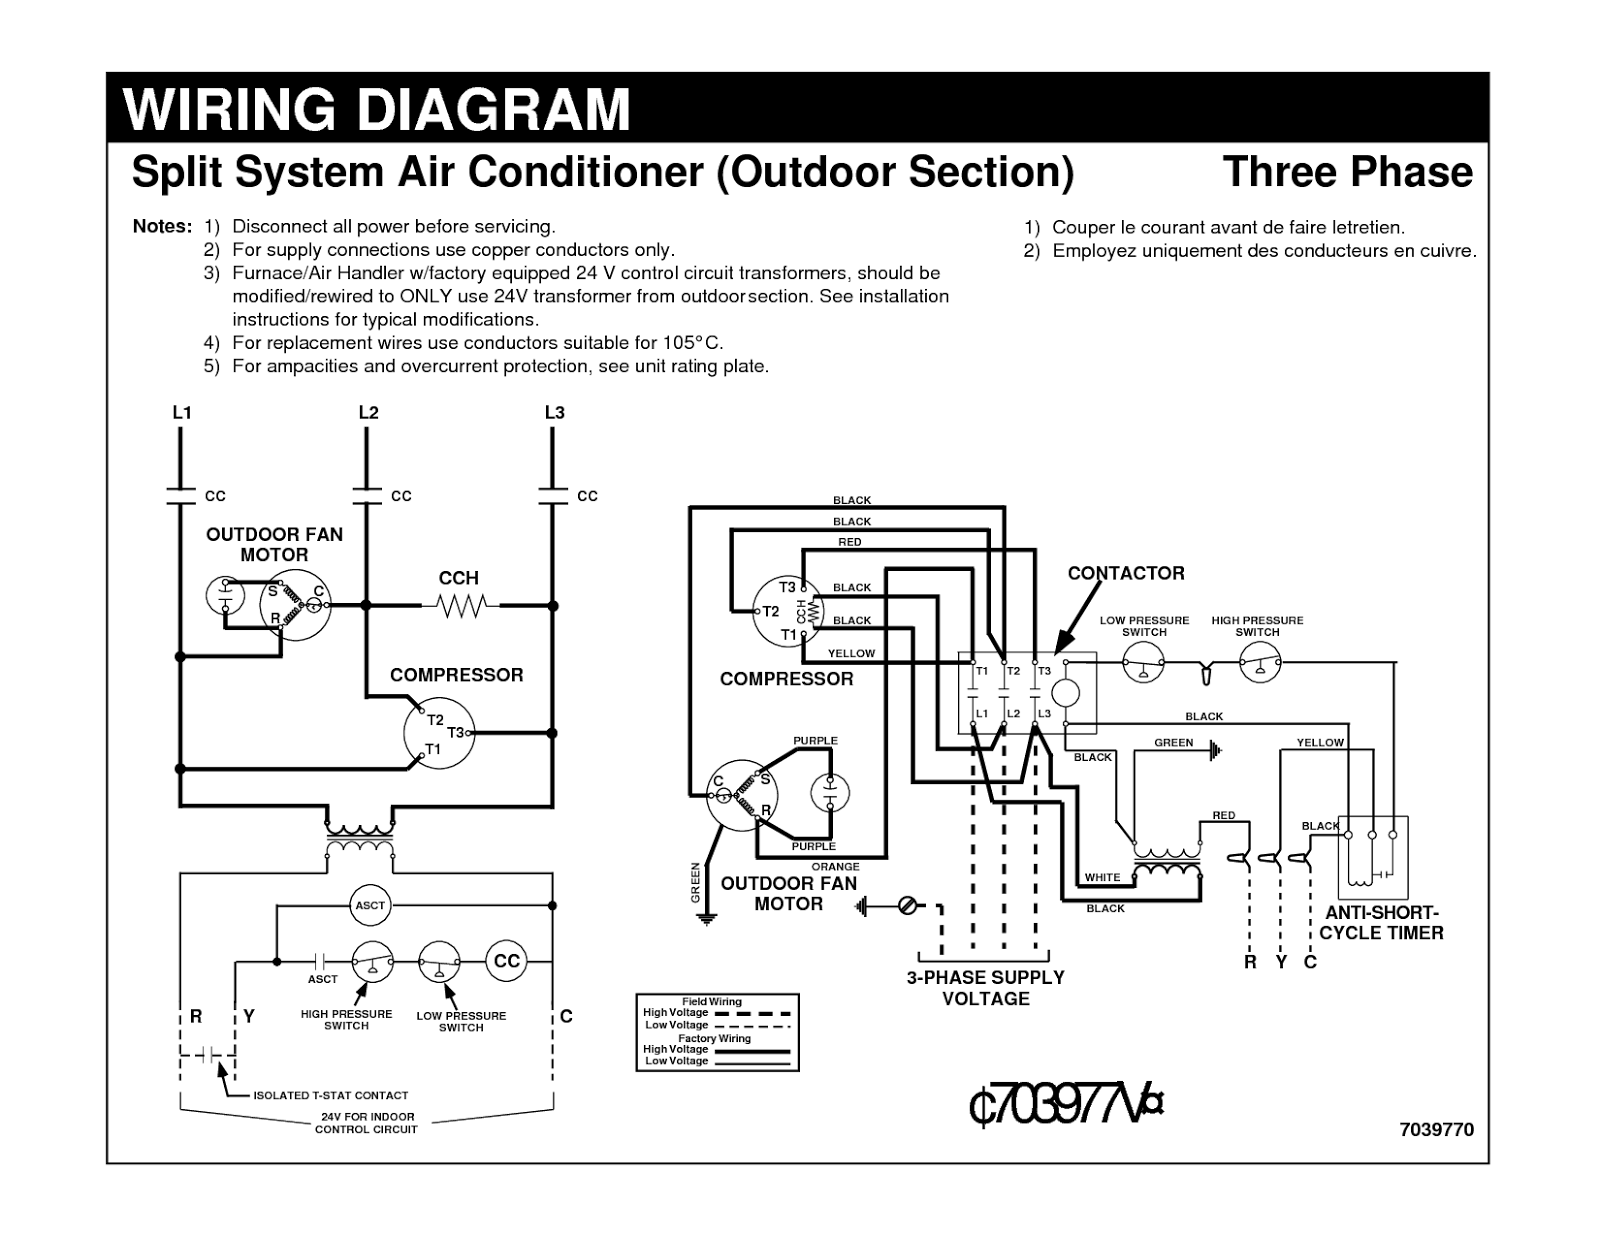 Wiring Diagrams For Hvac Motors : Electrical wiring diagrams for air conditioning systems